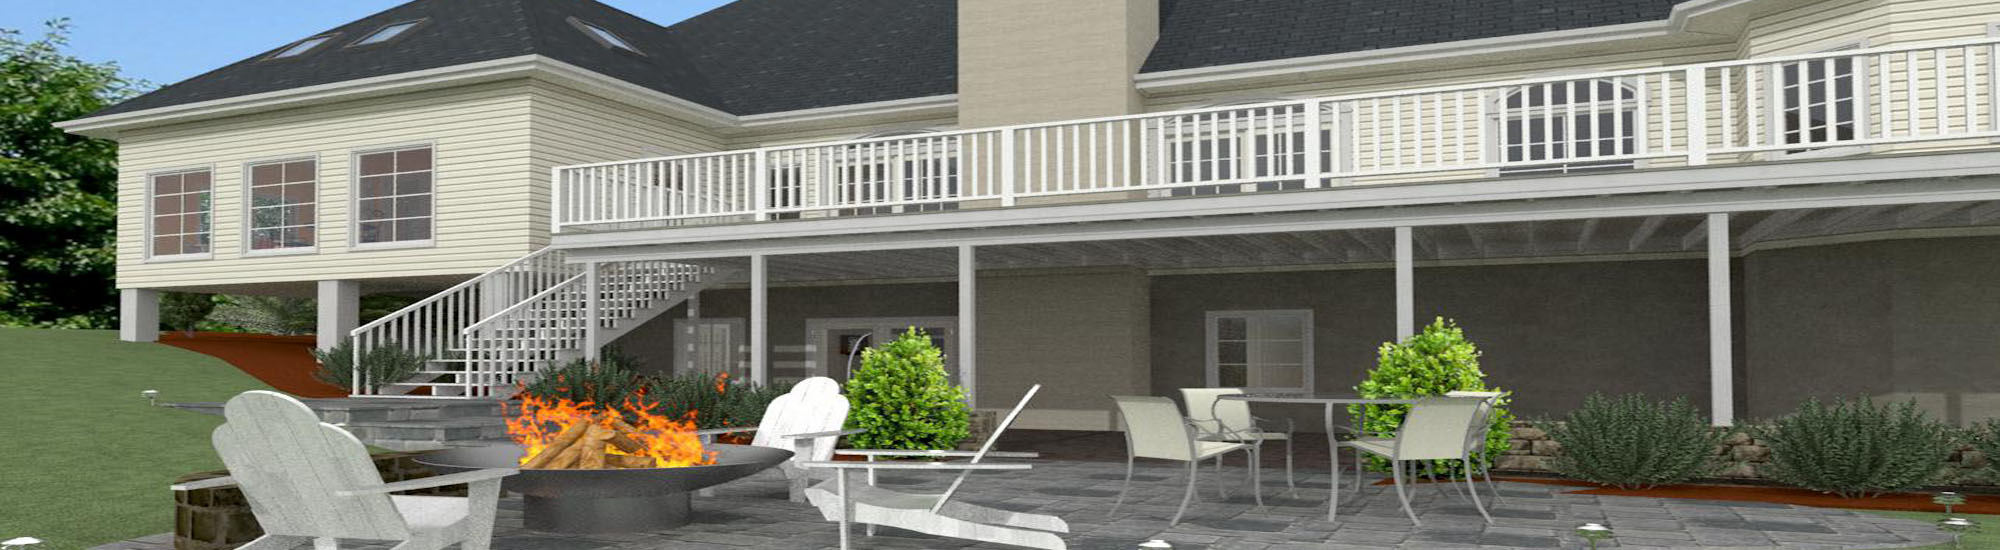 Outdoor Living Space Remodeling CAD-Design Build Pros (1)